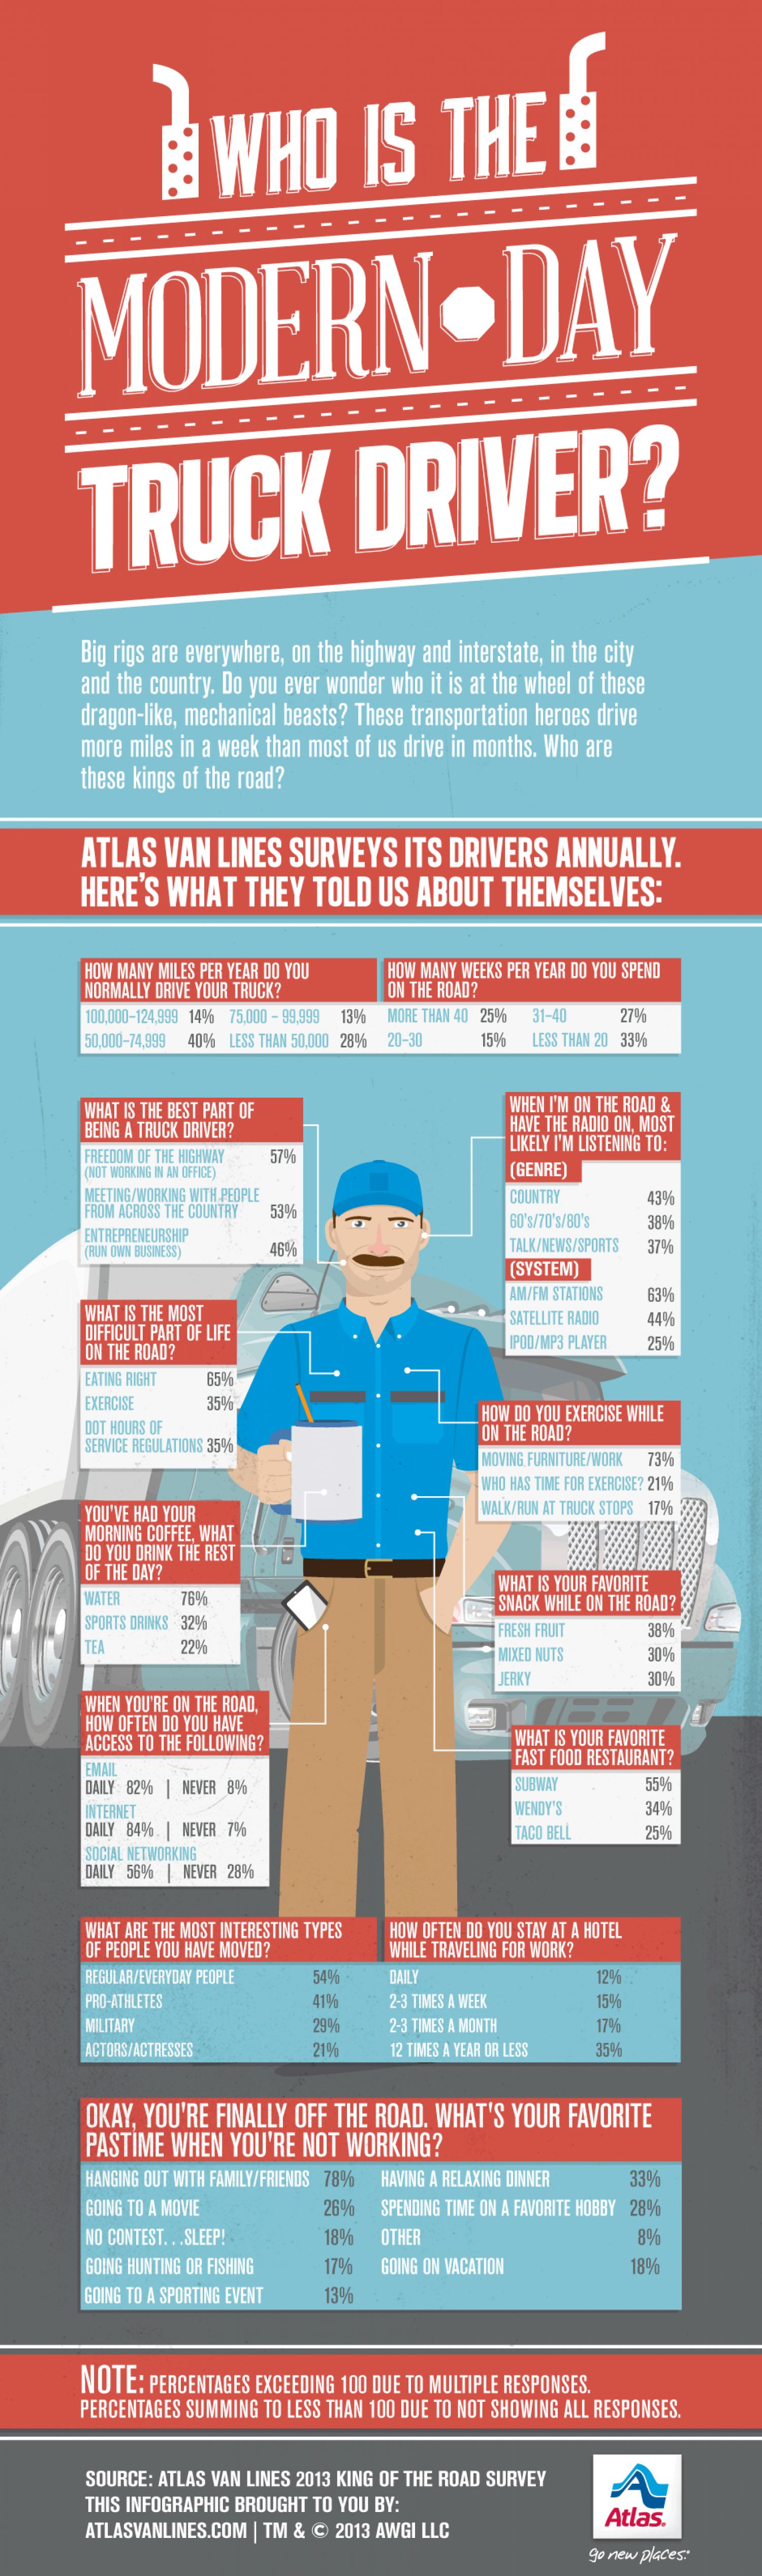 Who is the Modern Day Truck Driver? Infographic